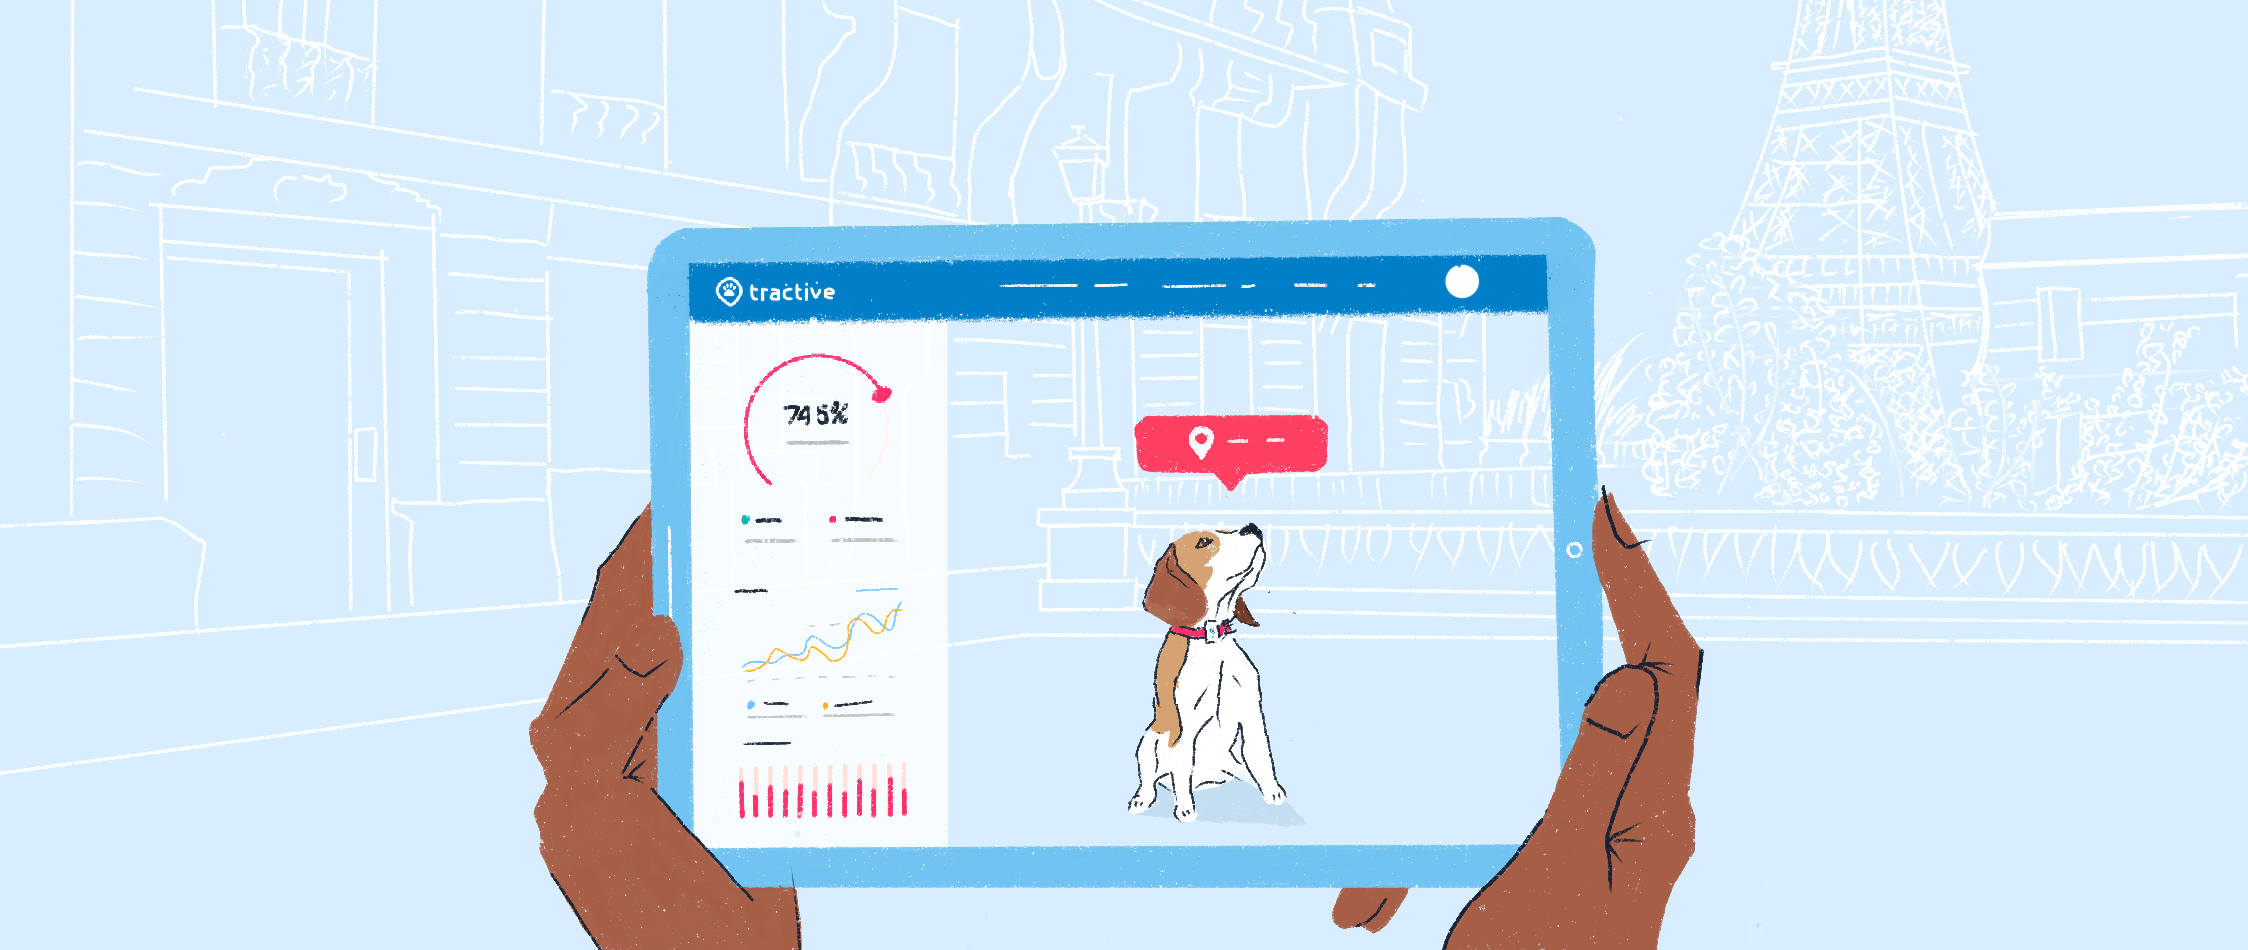 Top trends in UX patterns and methods in 2020